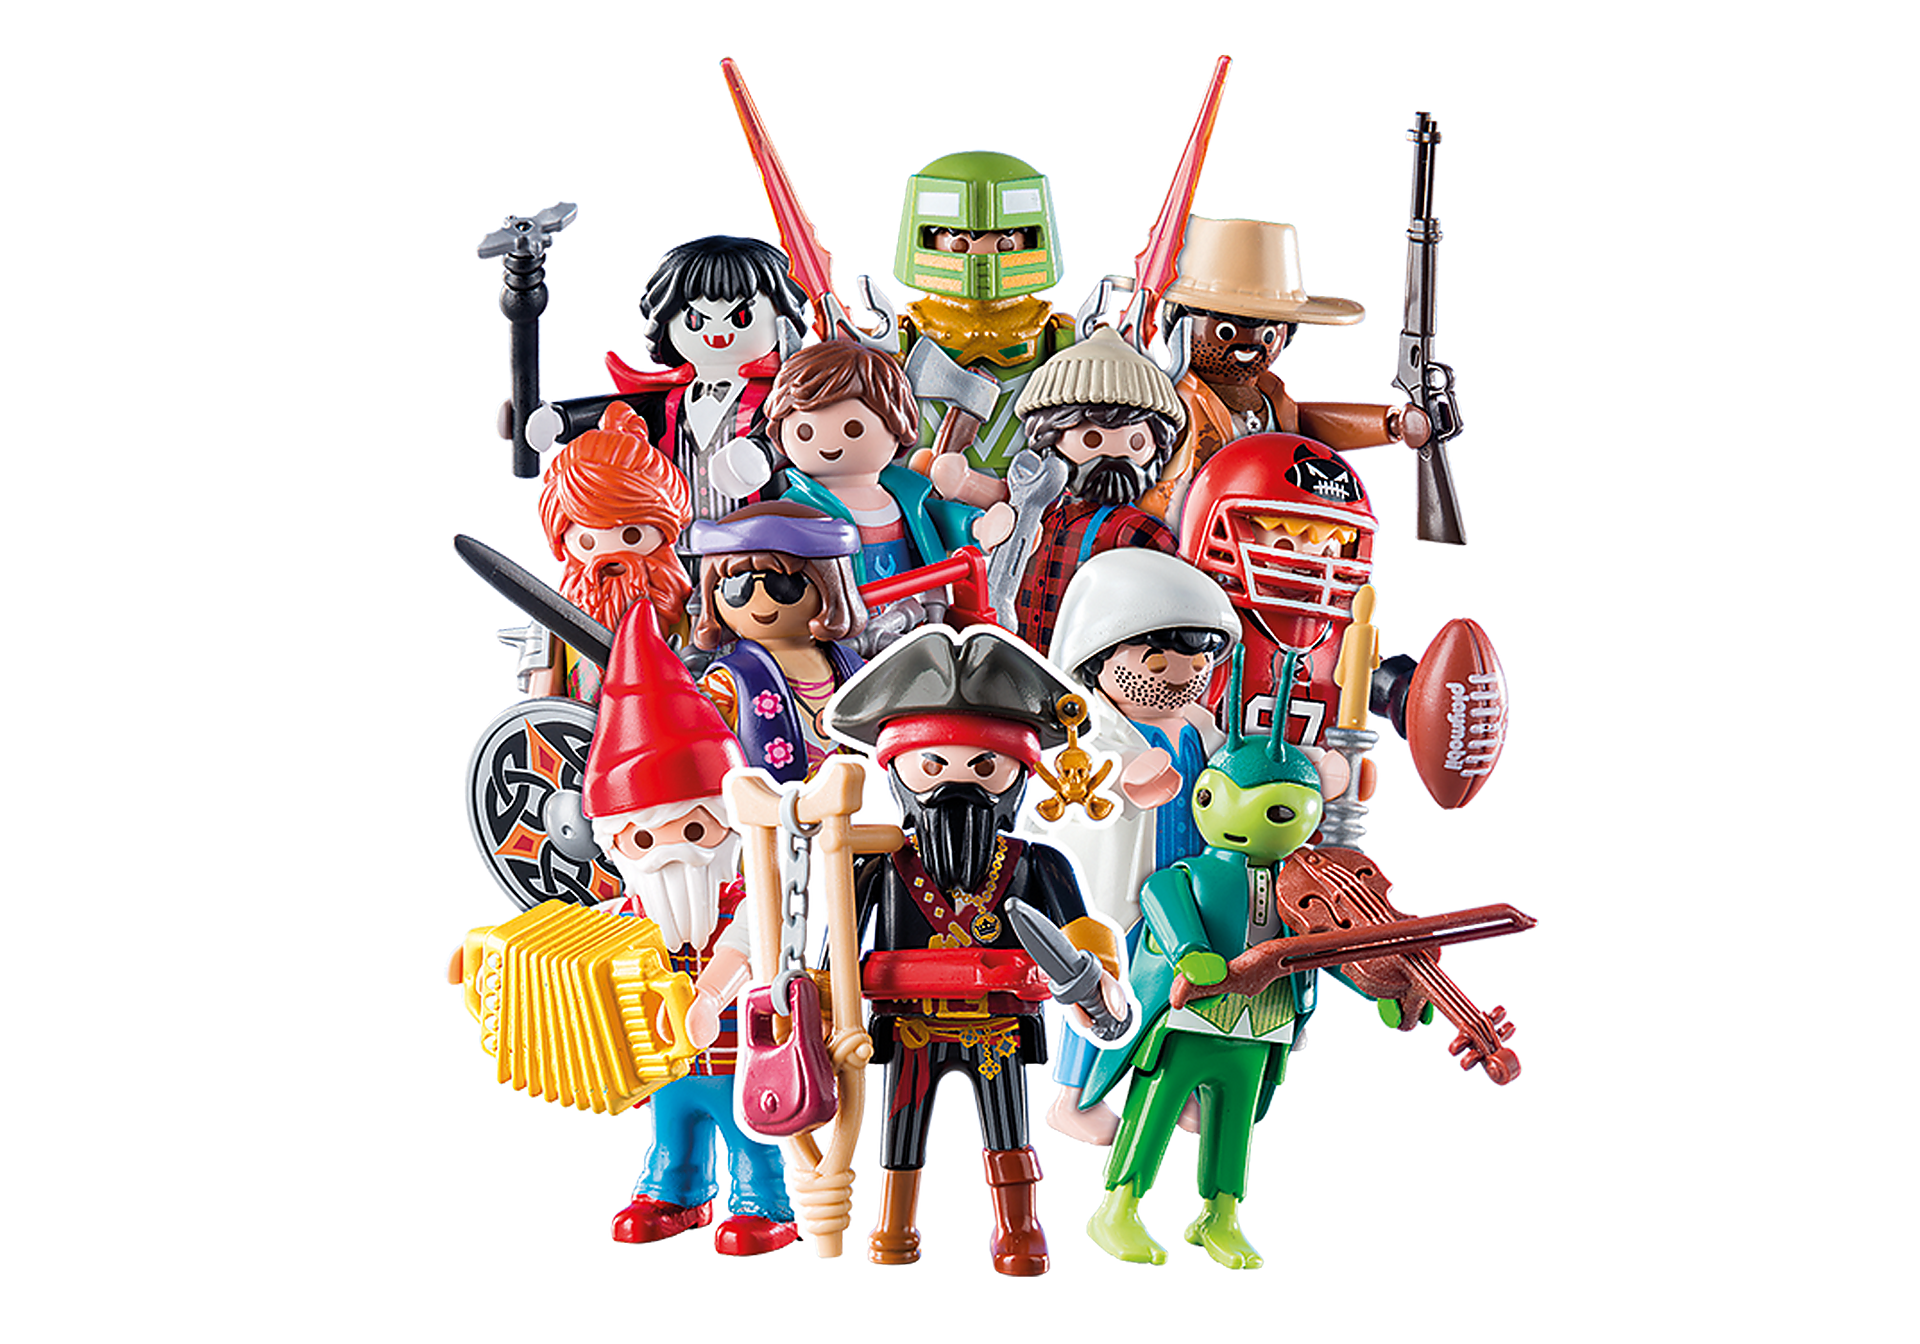 70025 PLAYMOBIL-Figures Boys (Serie 15) zoom image1